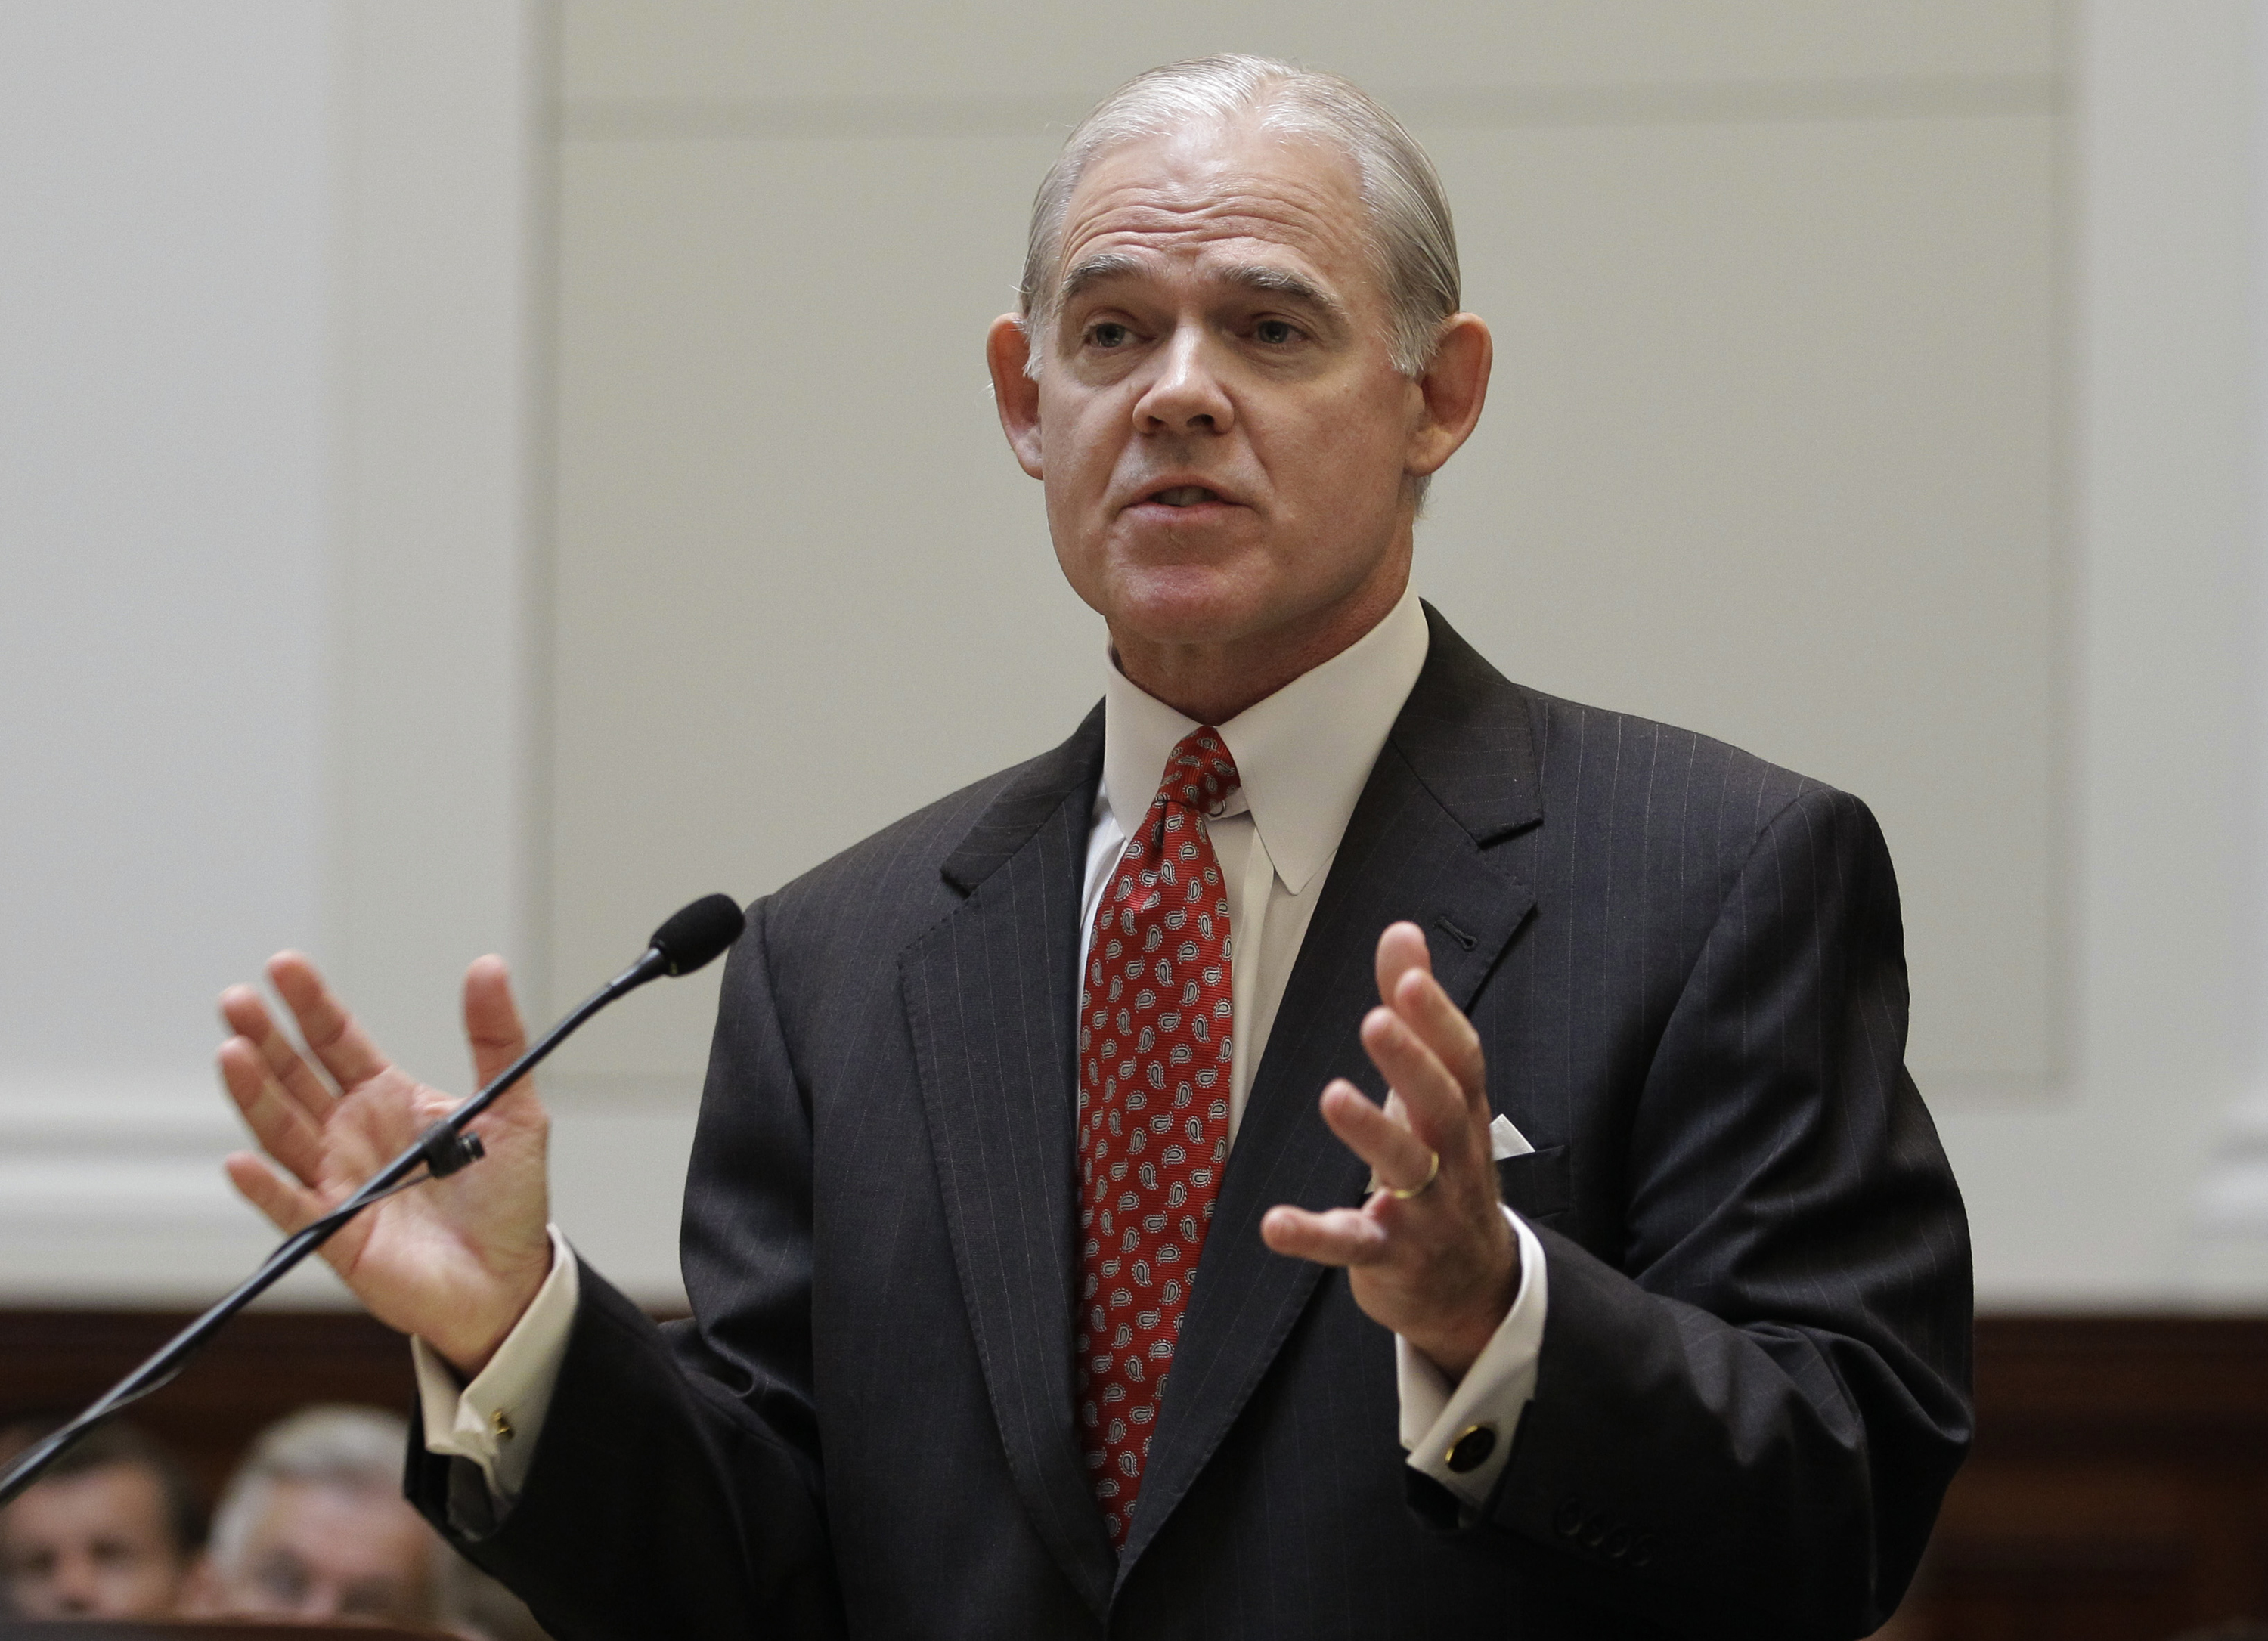 This Sept. 6, 2011 file photo shows Attorney Charles Cooper speaking in a courtroom during a California State Supreme Court hearing in San Francisco.